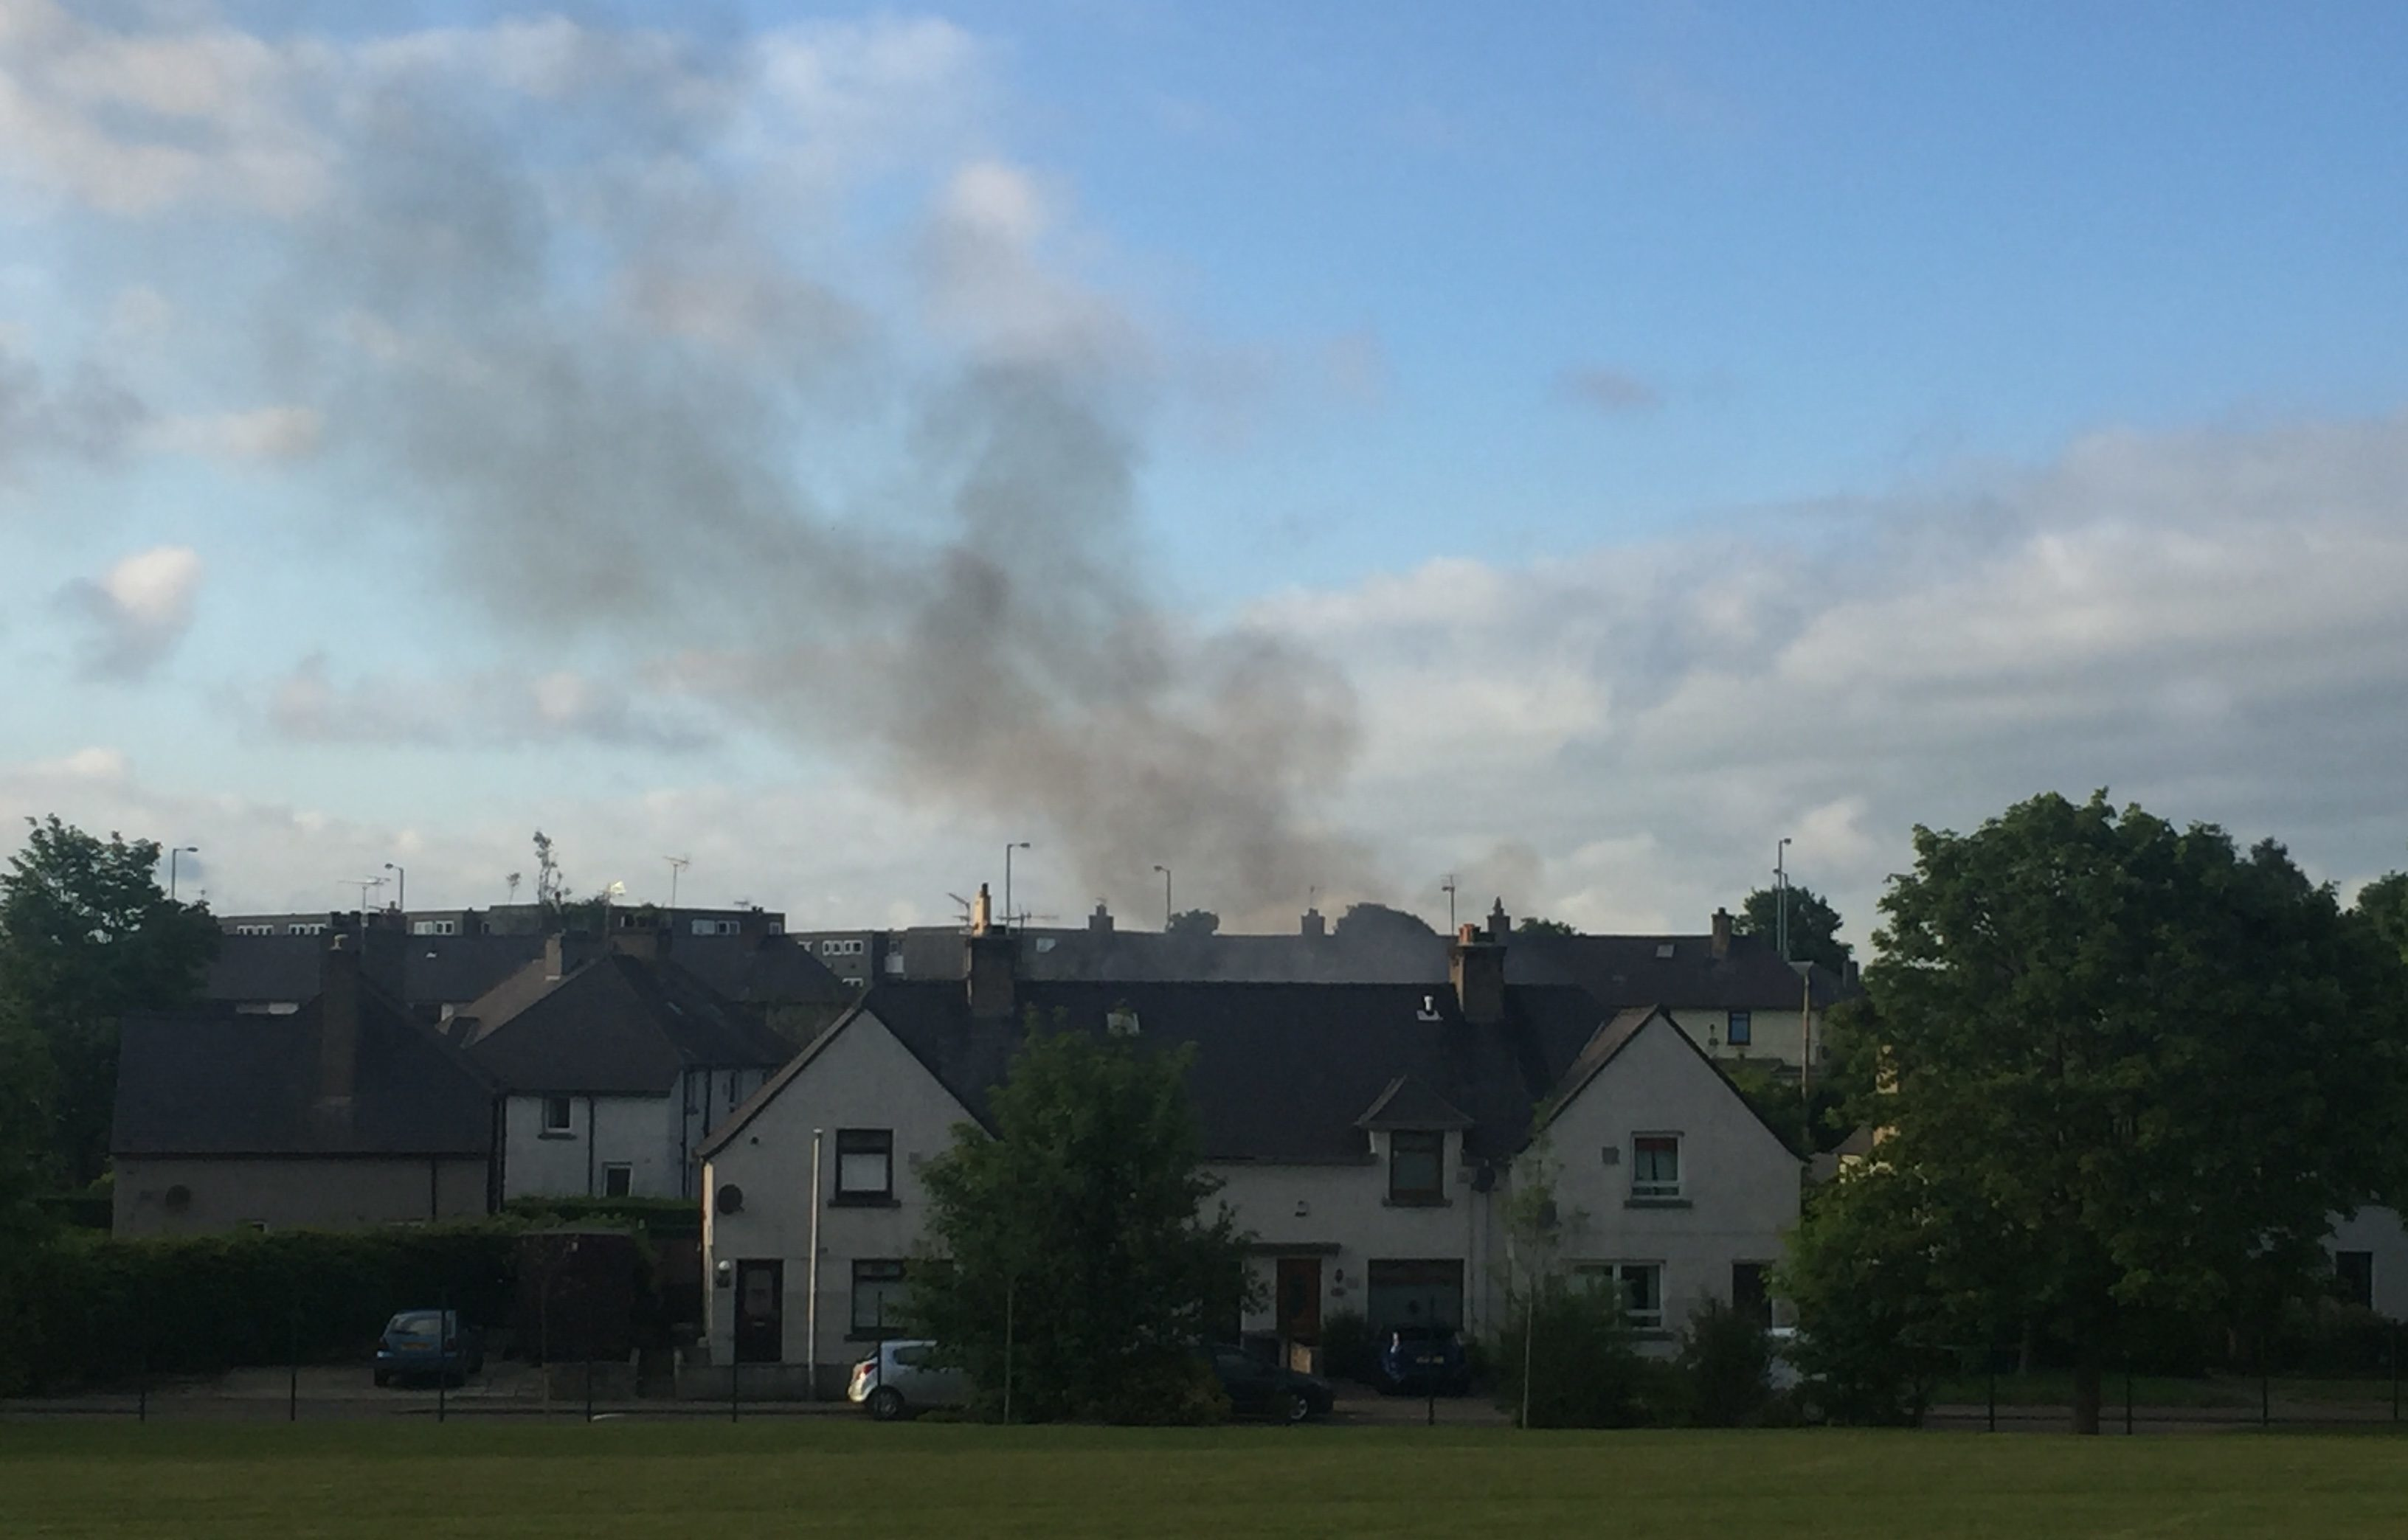 Smoke can be seen rising from the fire